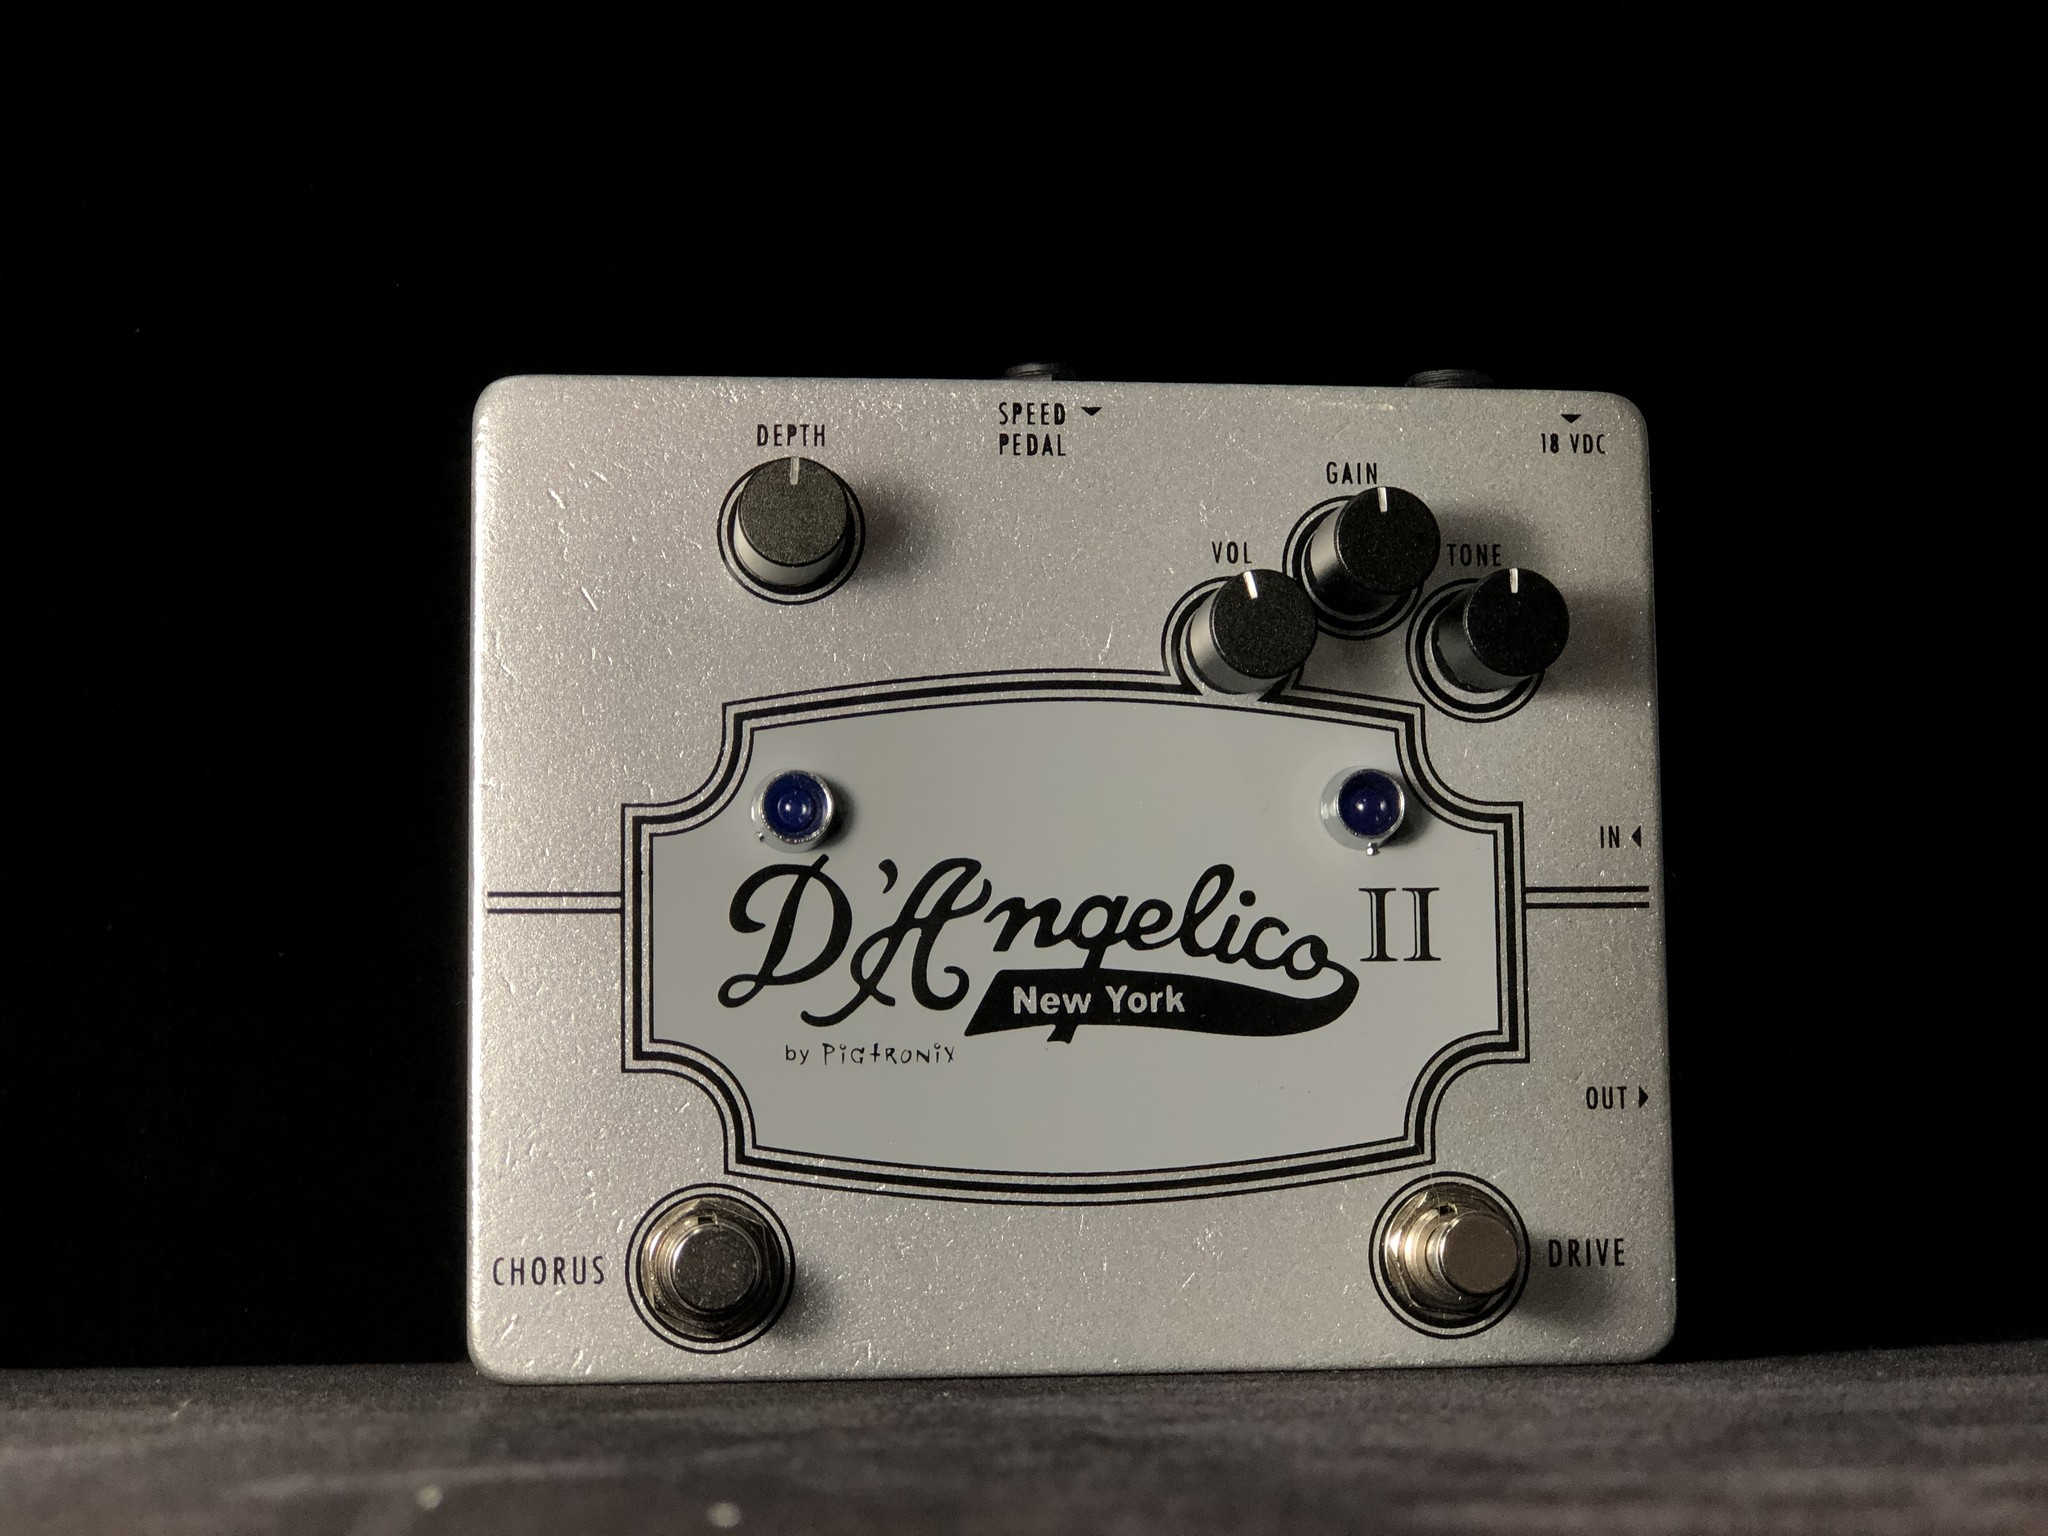 Pigtronix D'Angelico II Chorus & Drive Pedal-1